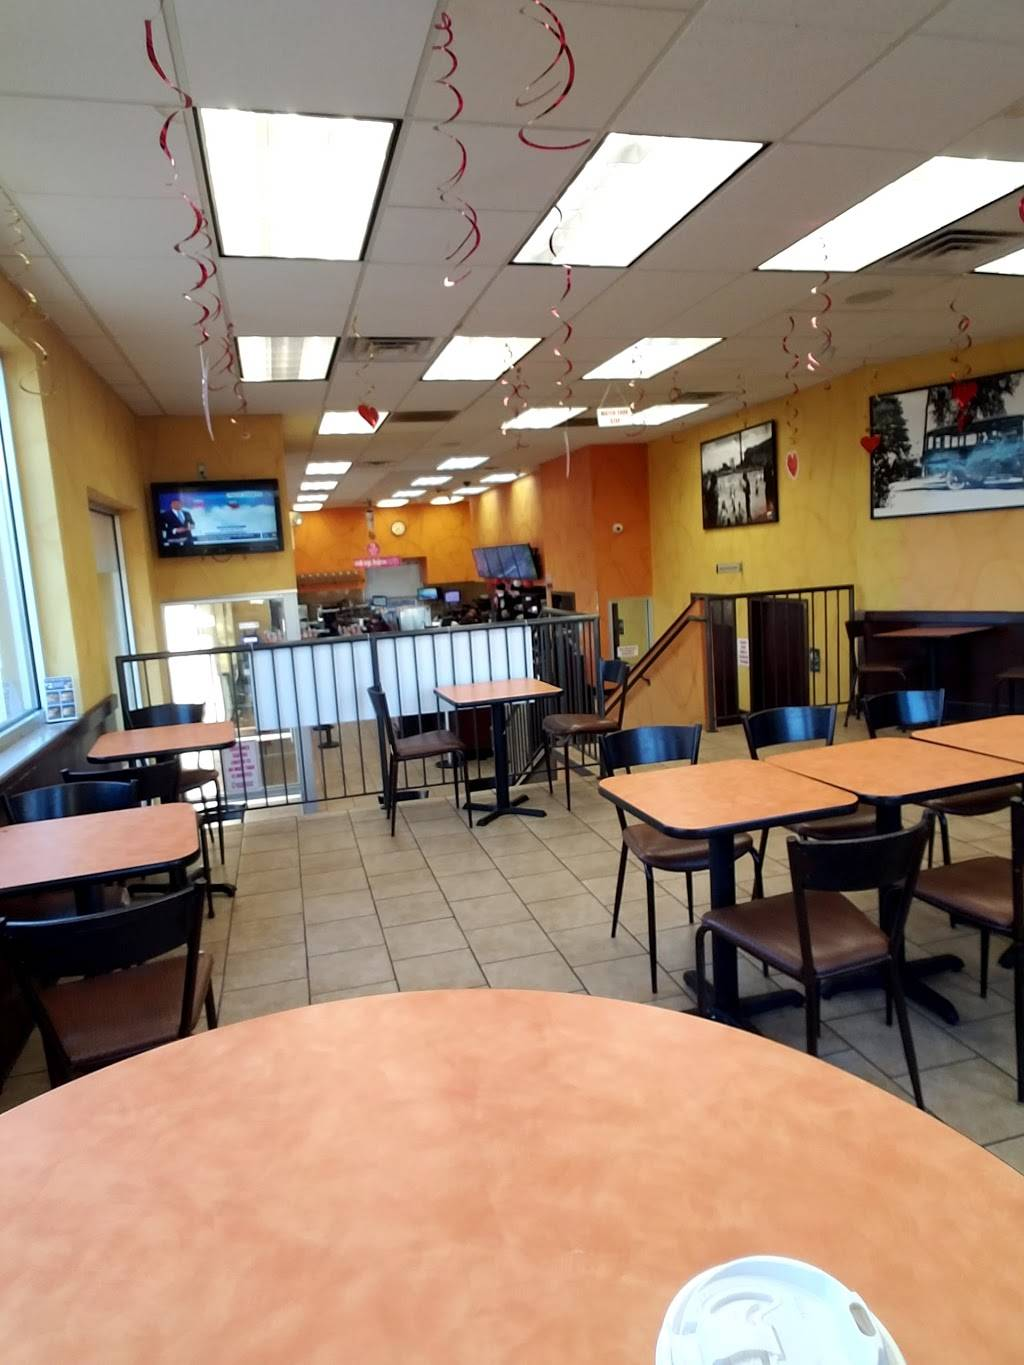 Dunkin Donuts | cafe | 531 Van Houten Ave, Clifton, NJ 07013, USA | 9737779531 OR +1 973-777-9531